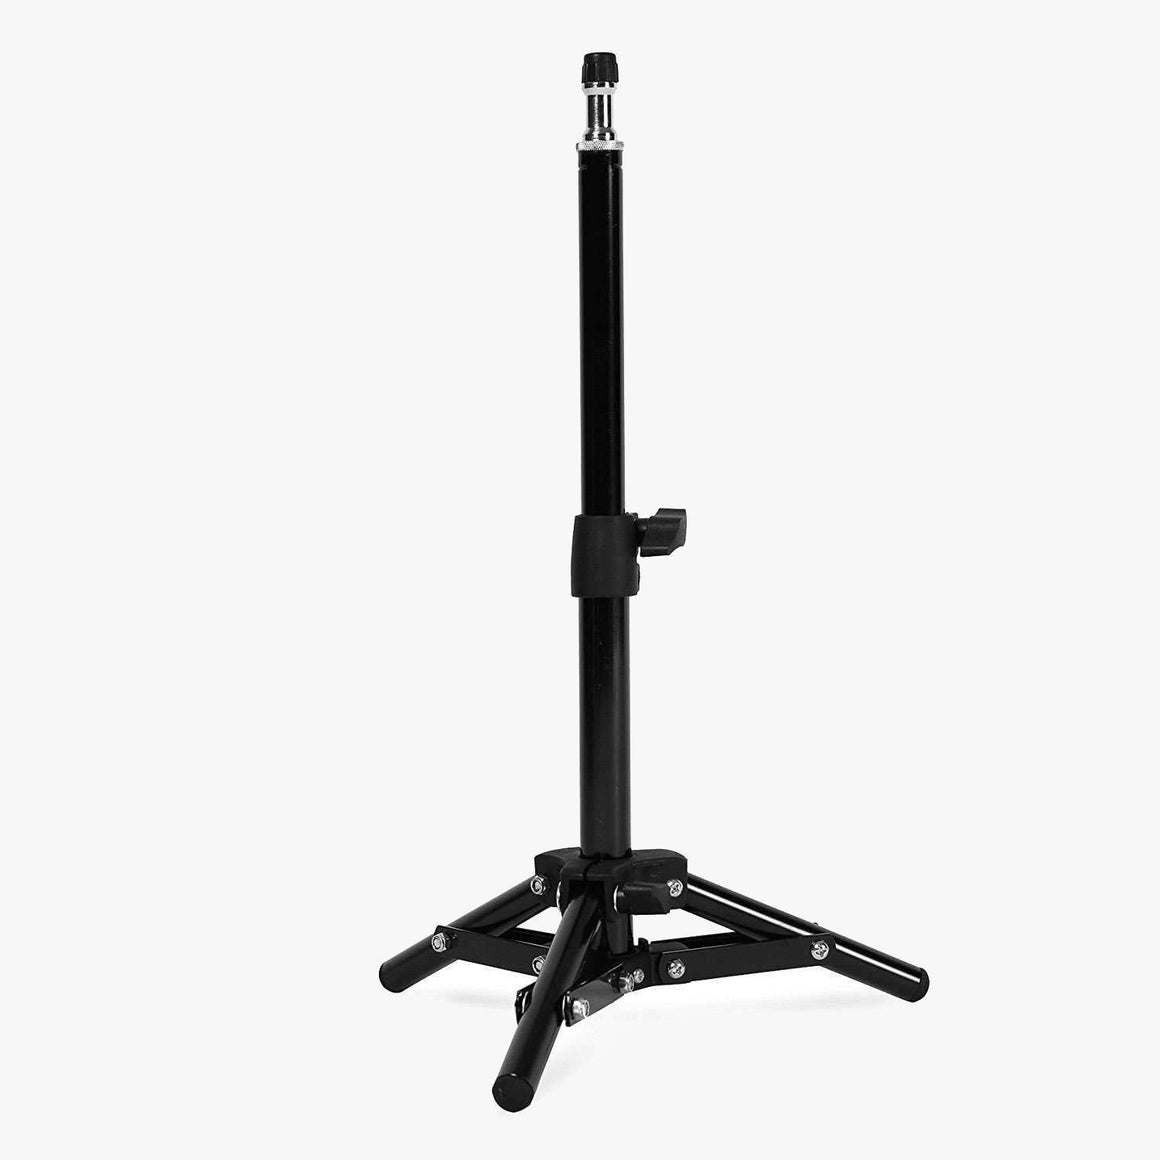 Spectrum Mini 43Cm Desk Light Stand Tripod Brand Complete Kits